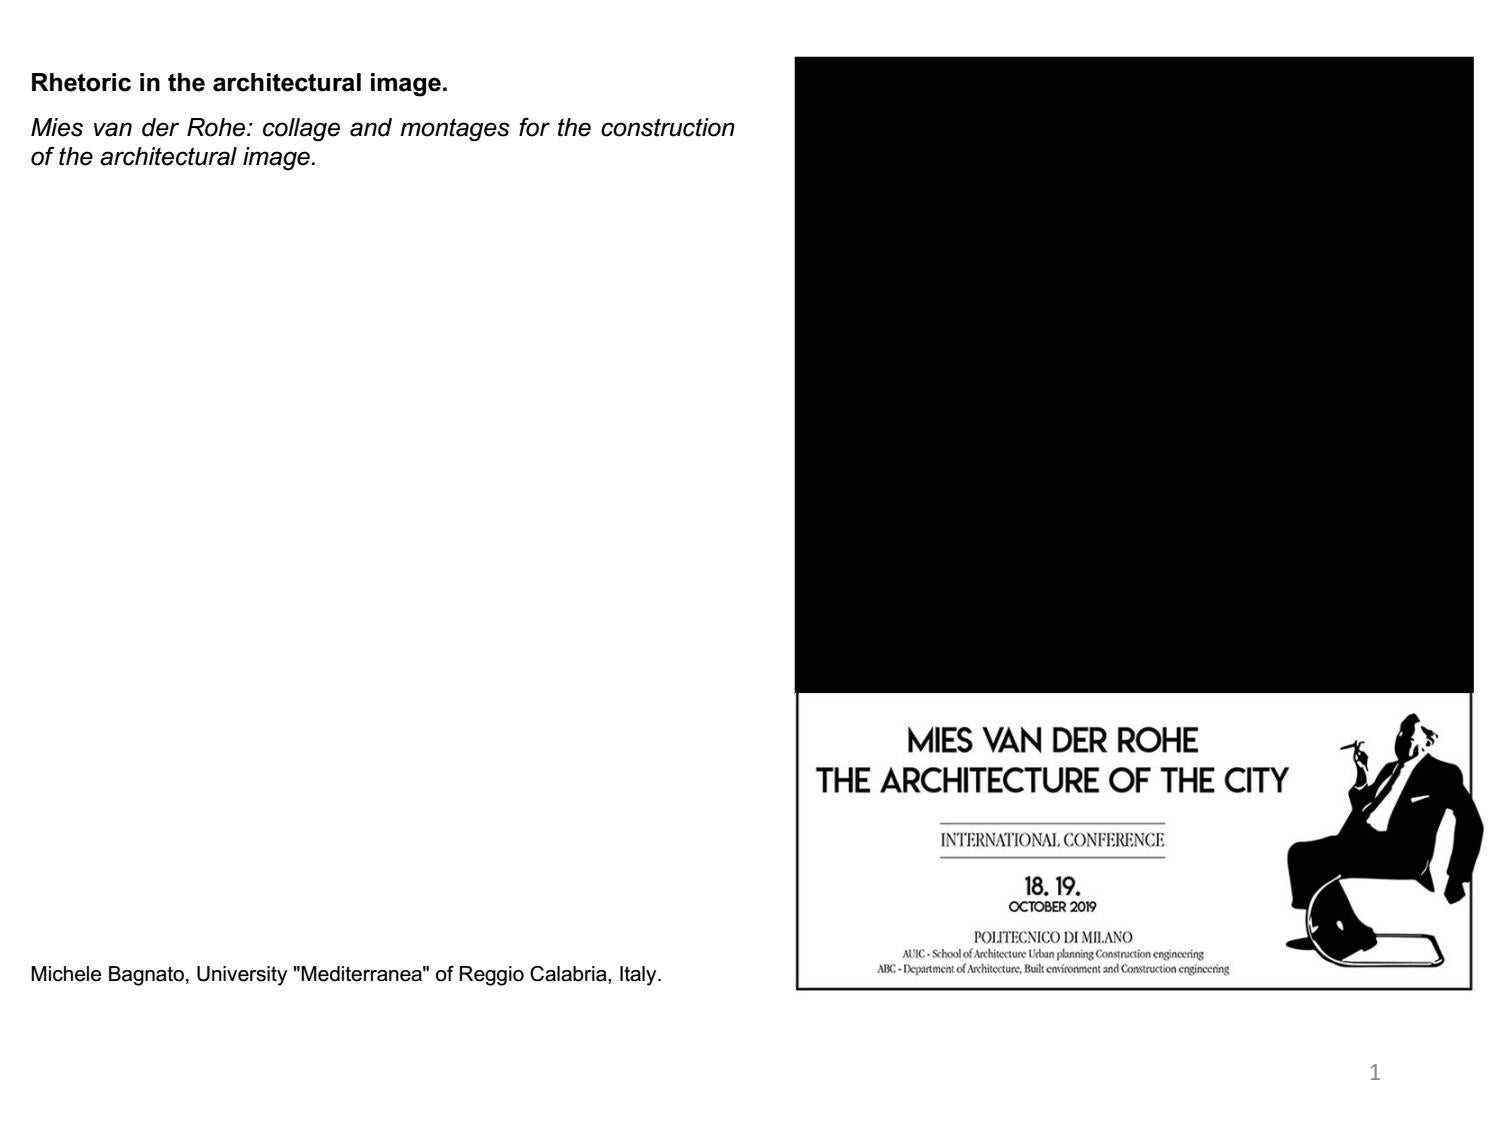 Mies Van Der Rohe Design Philosophy.Mies Van Der Rohe Collage And Montages For The Construction Of